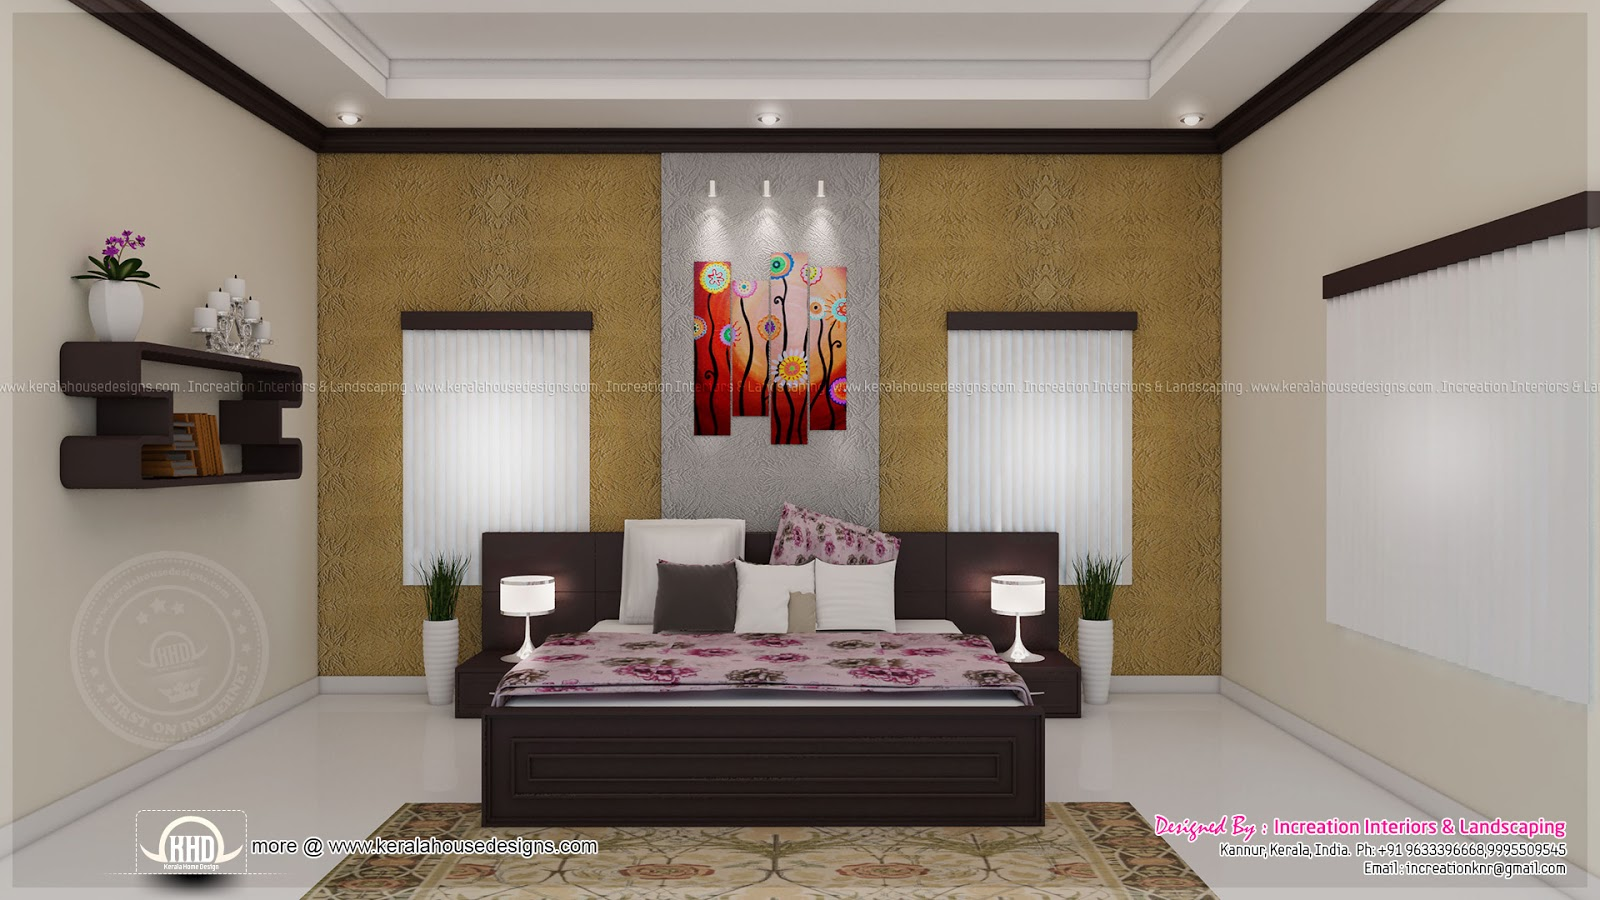 House interior ideas in 3d rendering kerala home design for Master bedroom interior design images